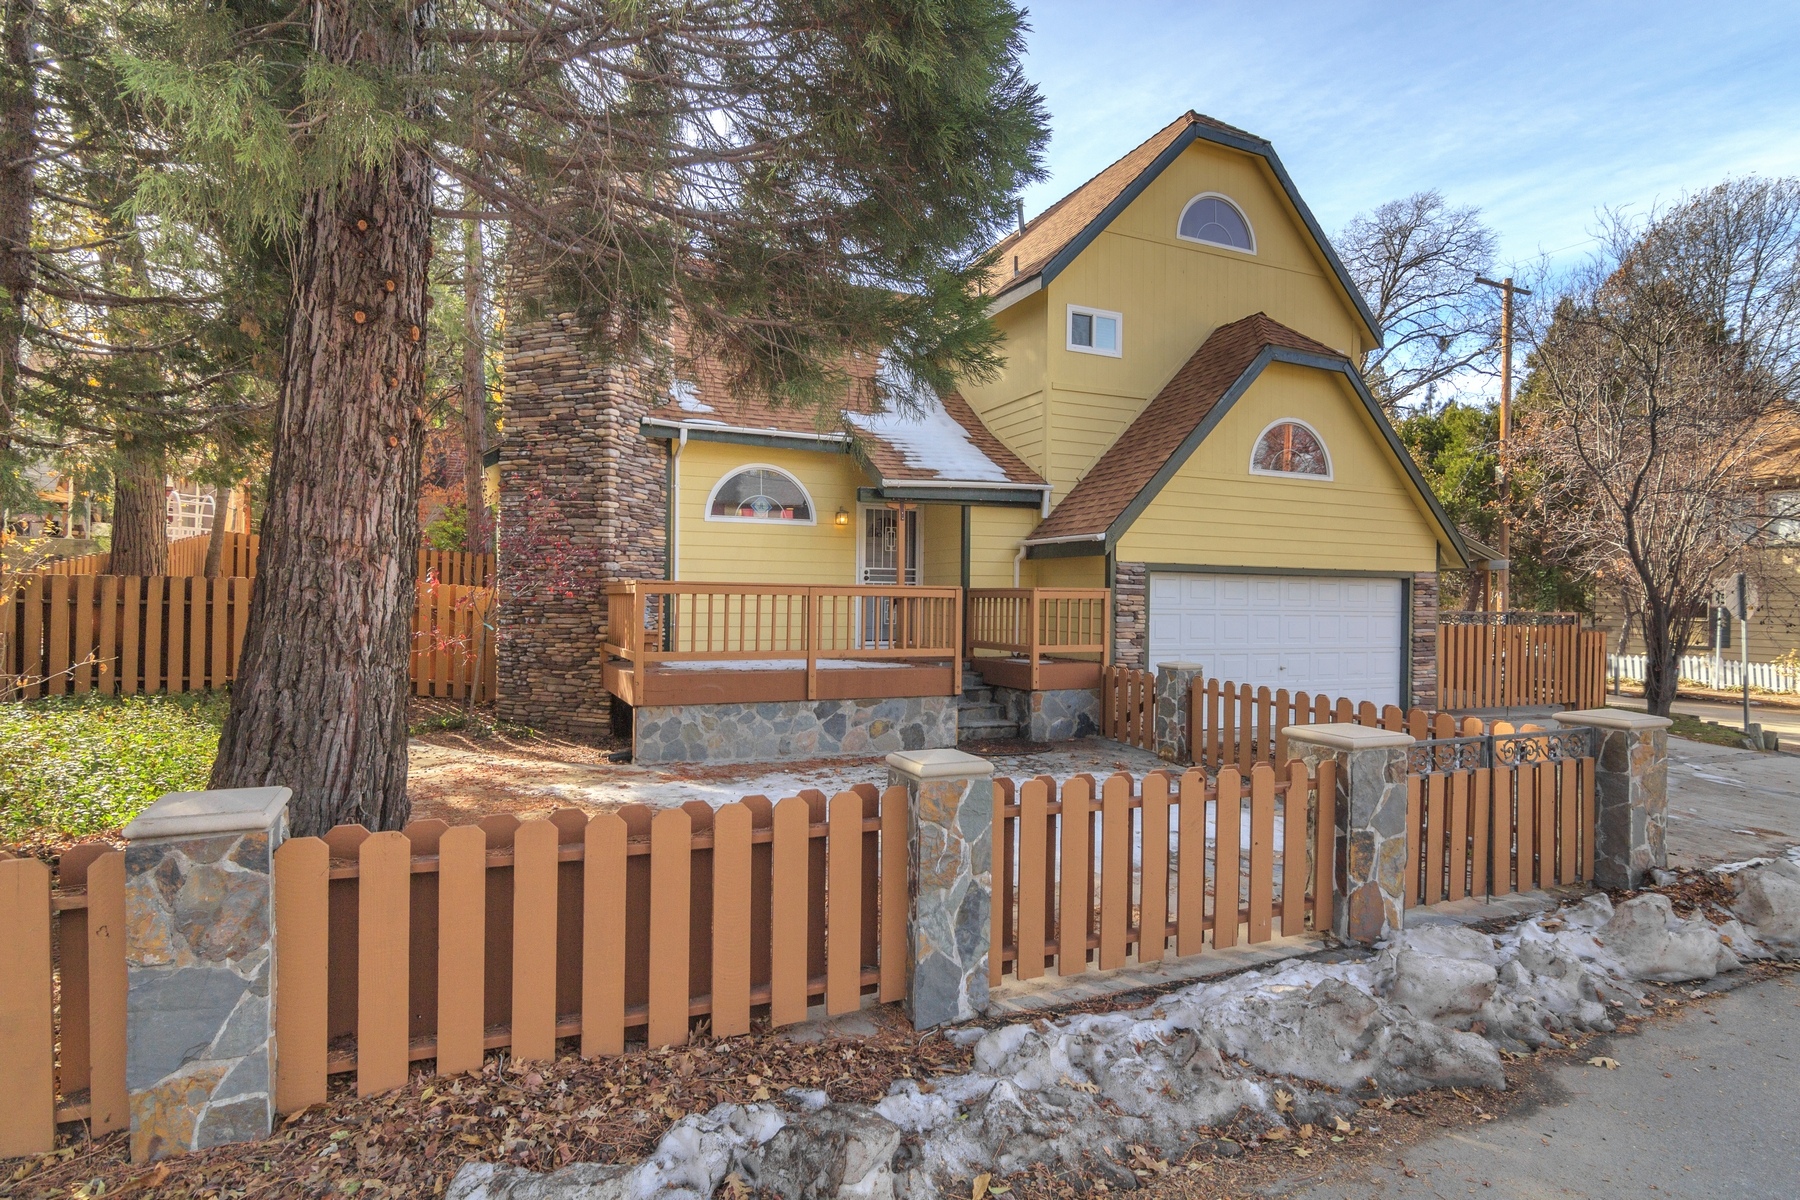 Maison unifamiliale pour l Vente à 347 Sunset Drive Lake Arrowhead, Californie 92352 États-Unis